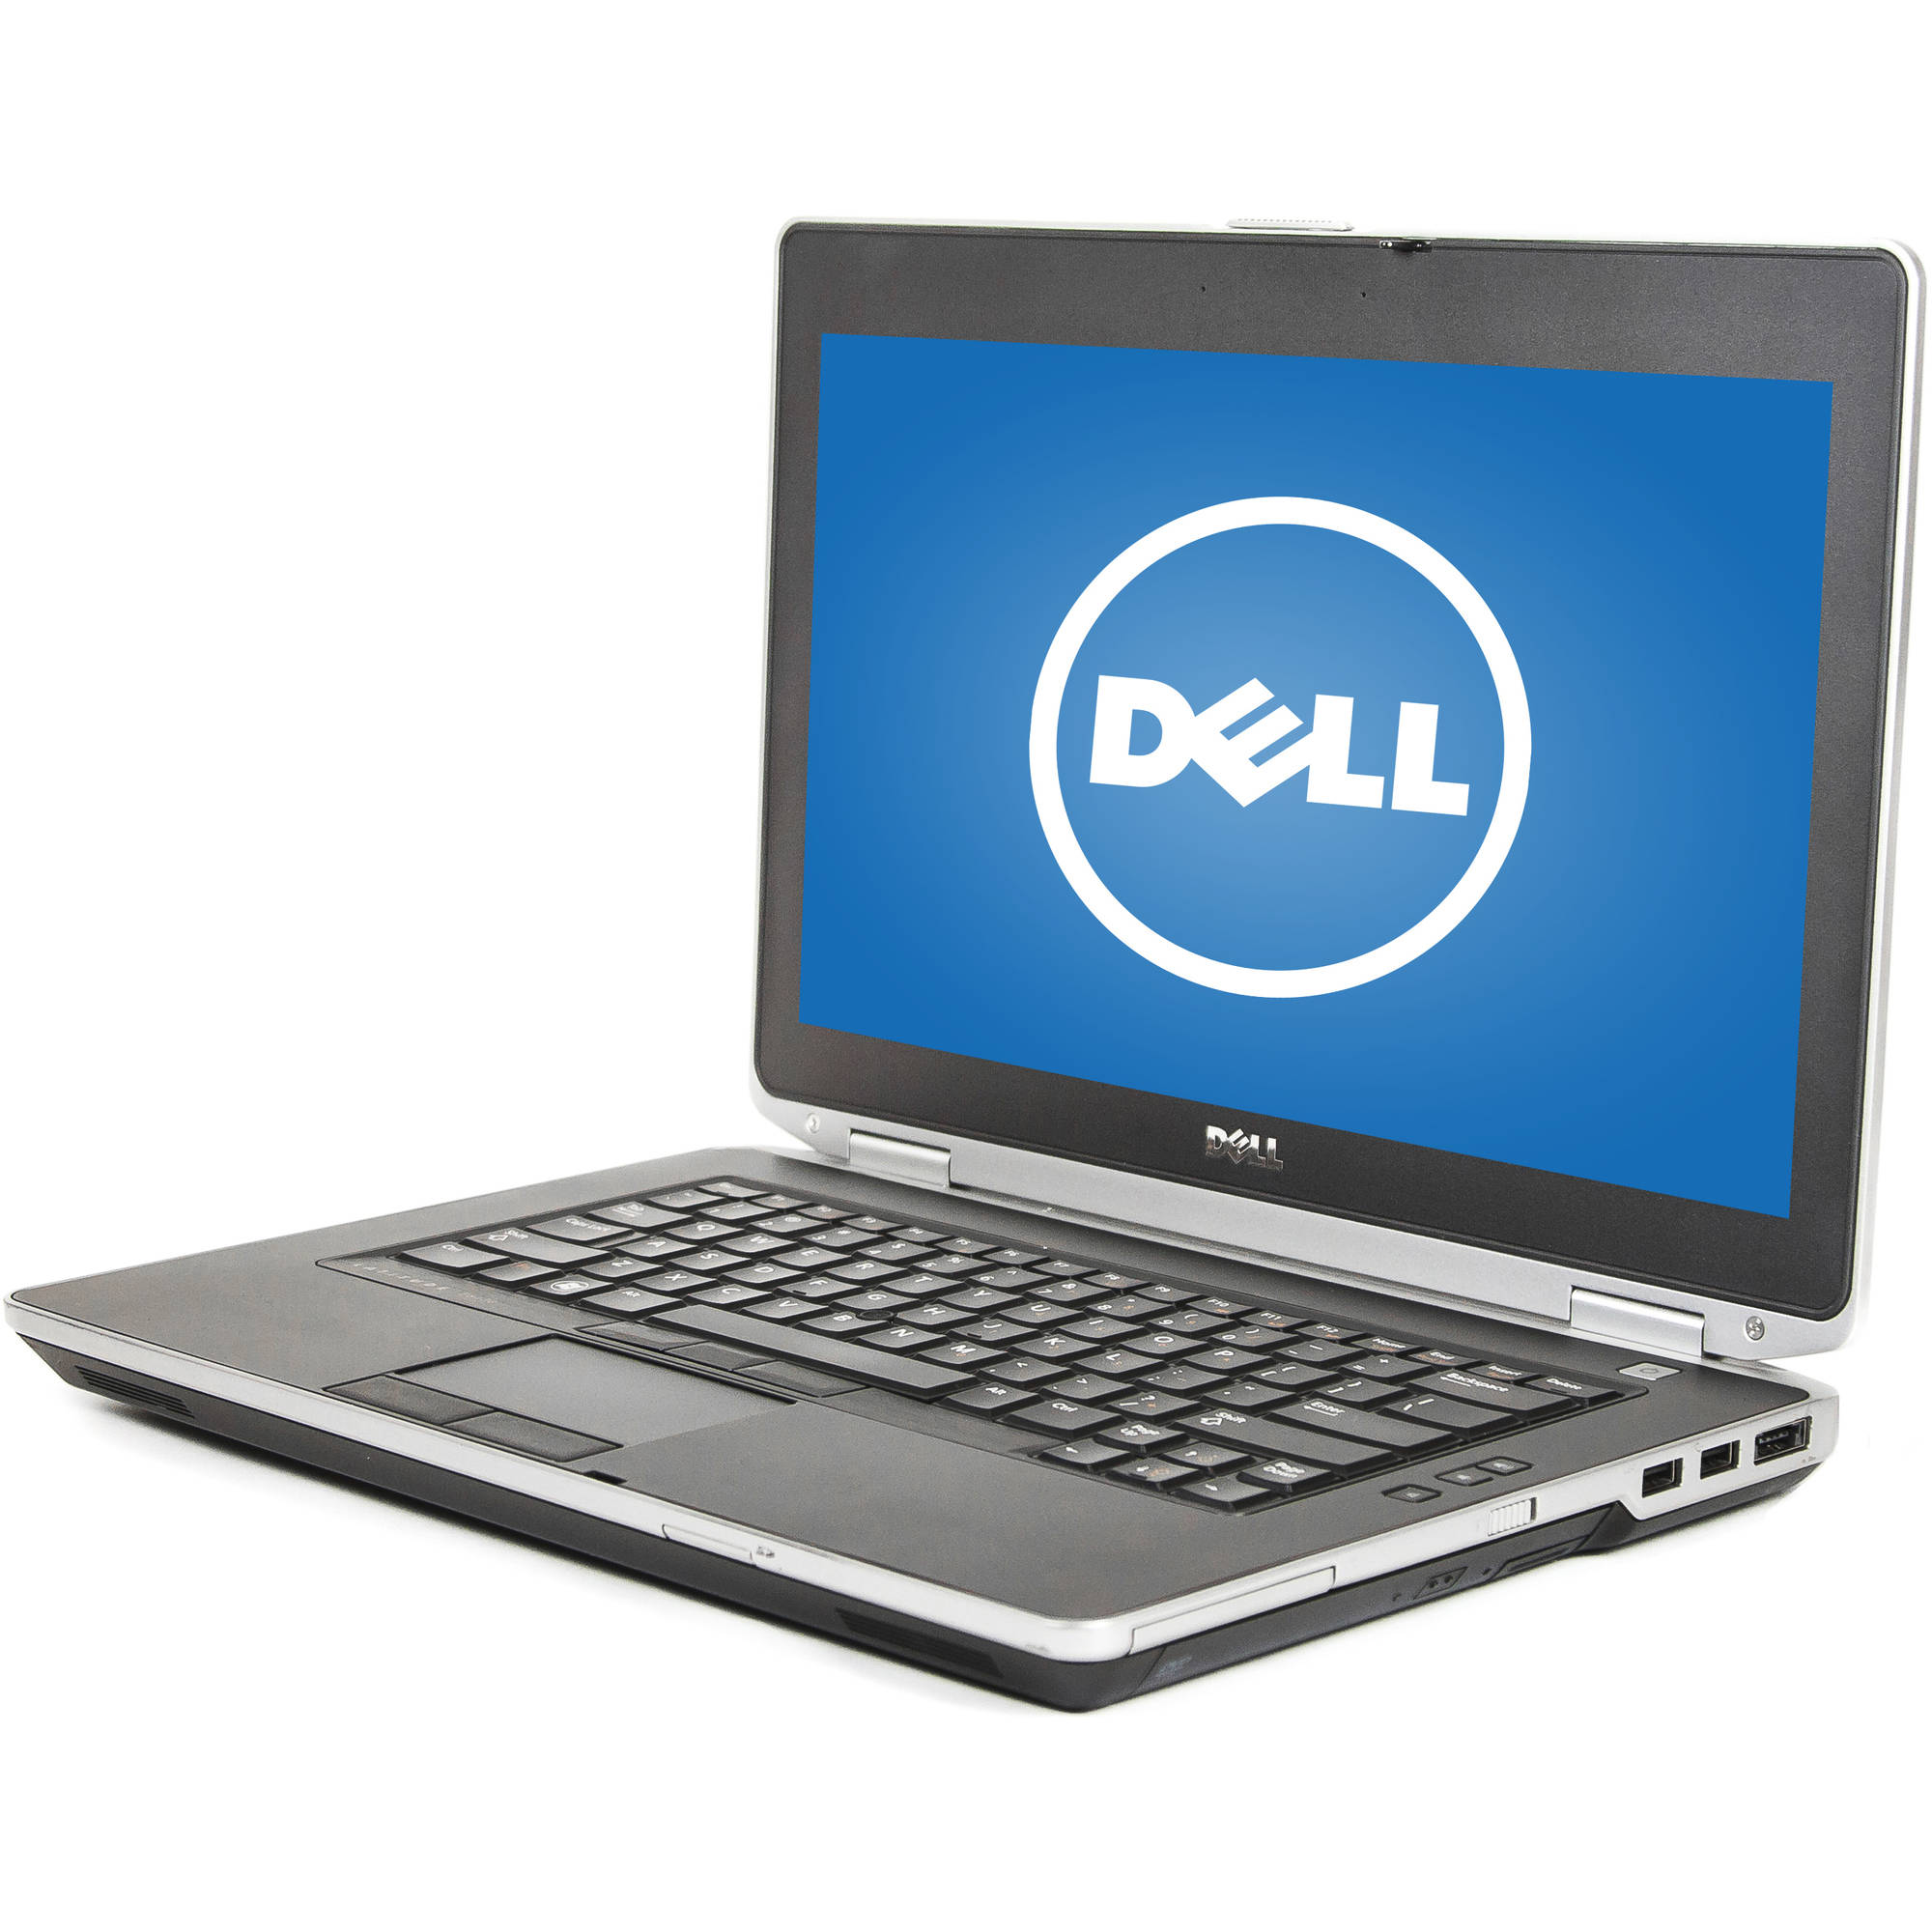 "Refurbished Dell 14"" E6430 Laptop PC with Intel Core i5-3220M Processor, 8GB Memory, 256GB Solid State Drive and Windows 10 Pro"